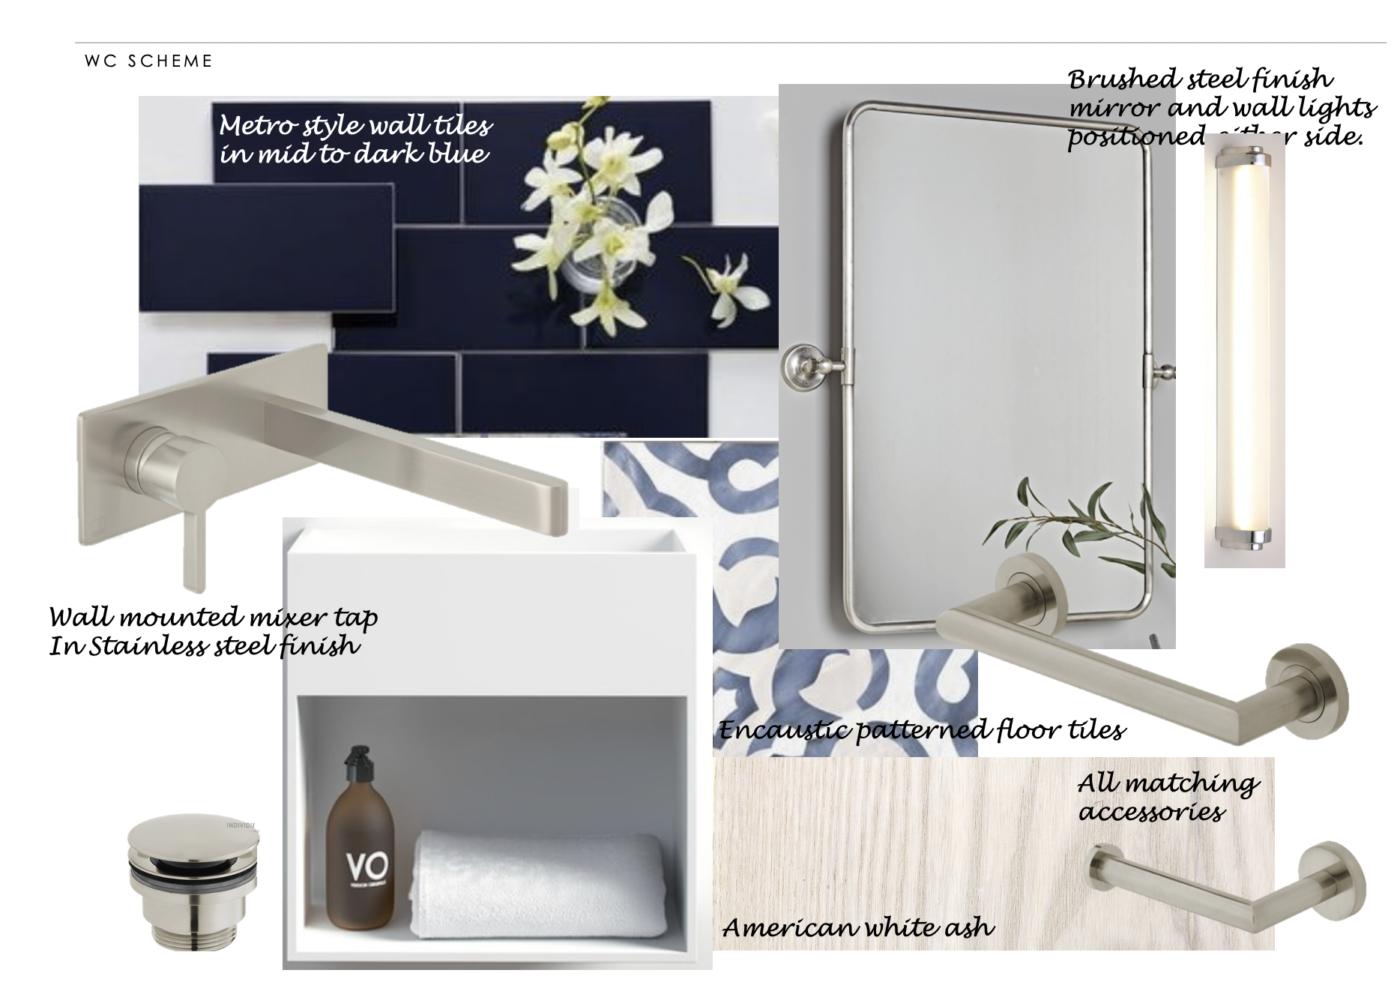 wc Mudeford project concept